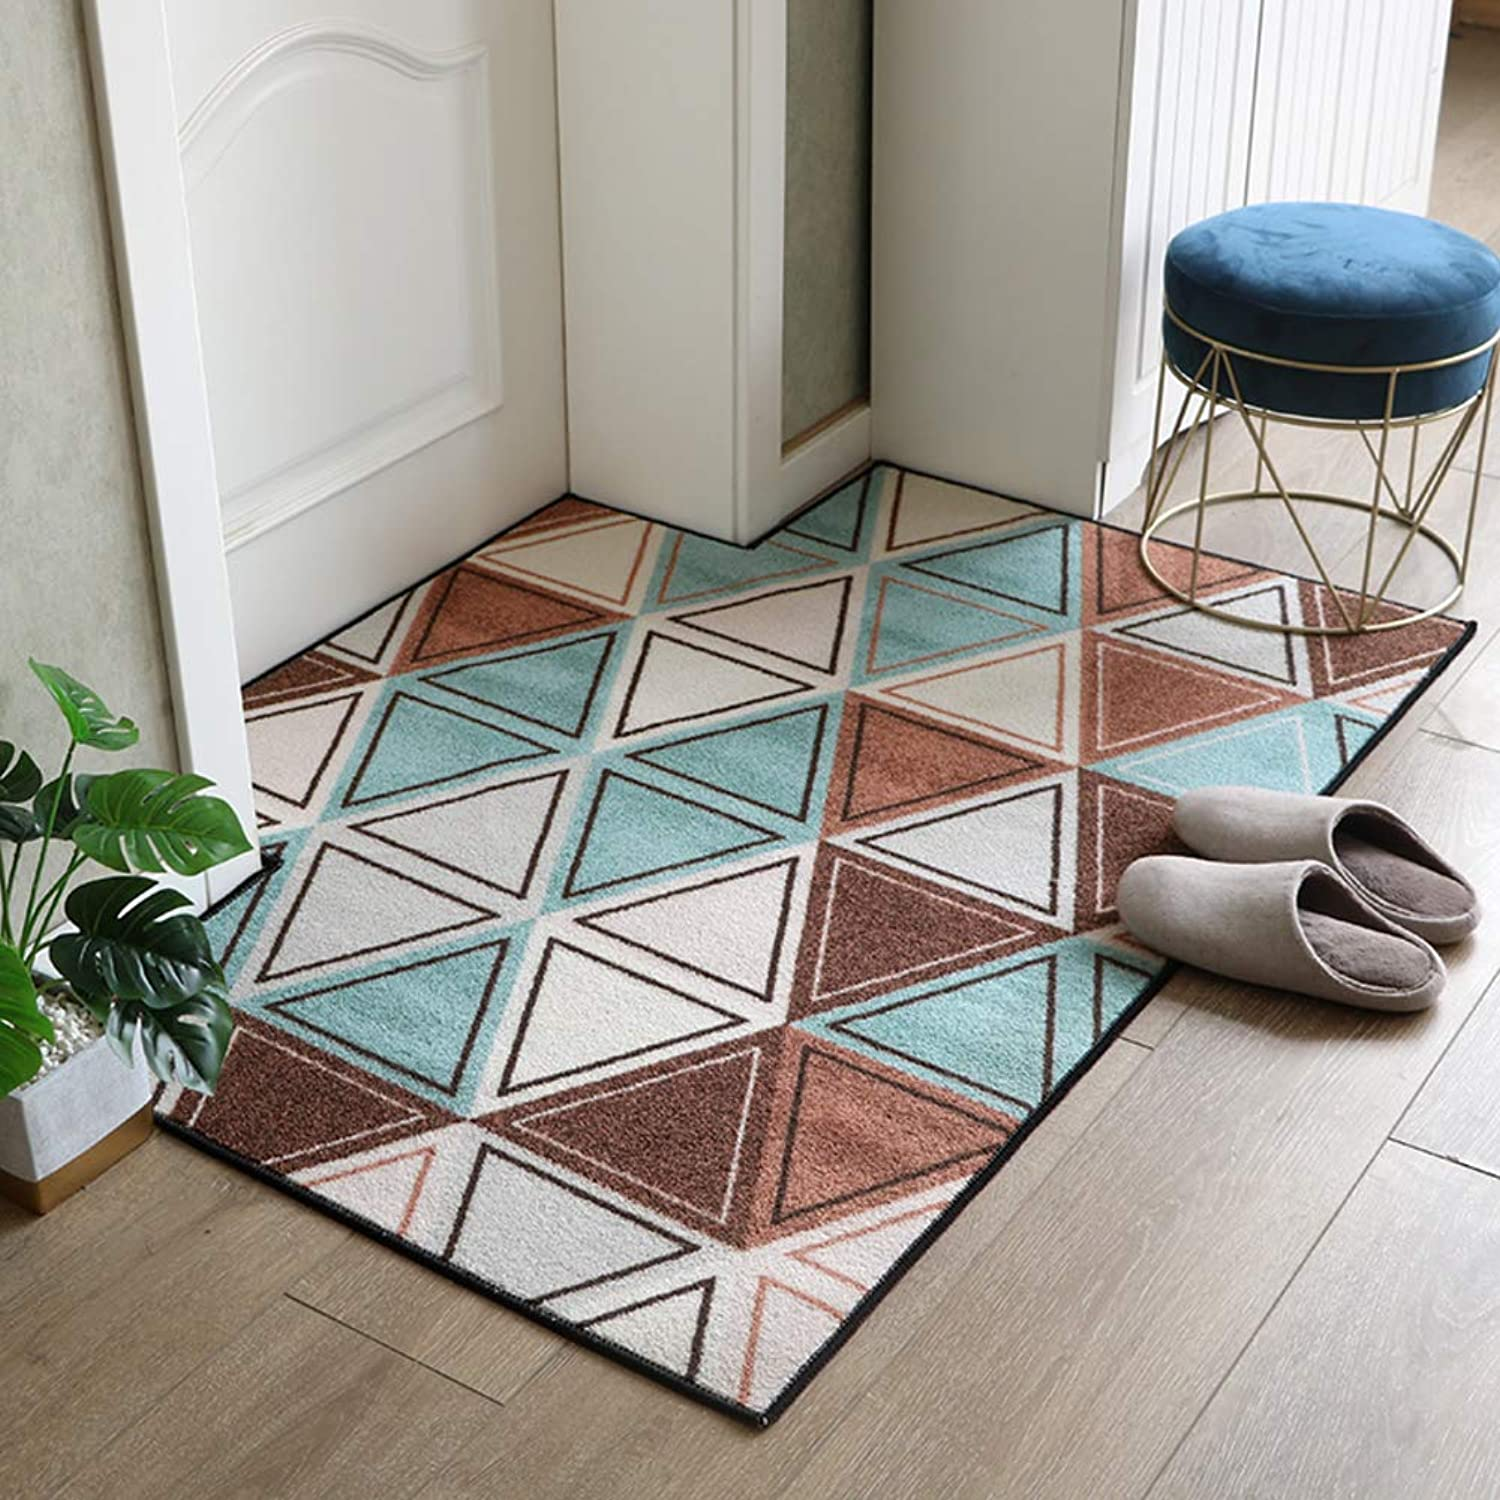 Carpet,Front Door Rug Door mat Living Room Bedroom Kitchen Rug Indoor mats Front Entrance Door mat-Triangle 80x100cm(31x39inch)